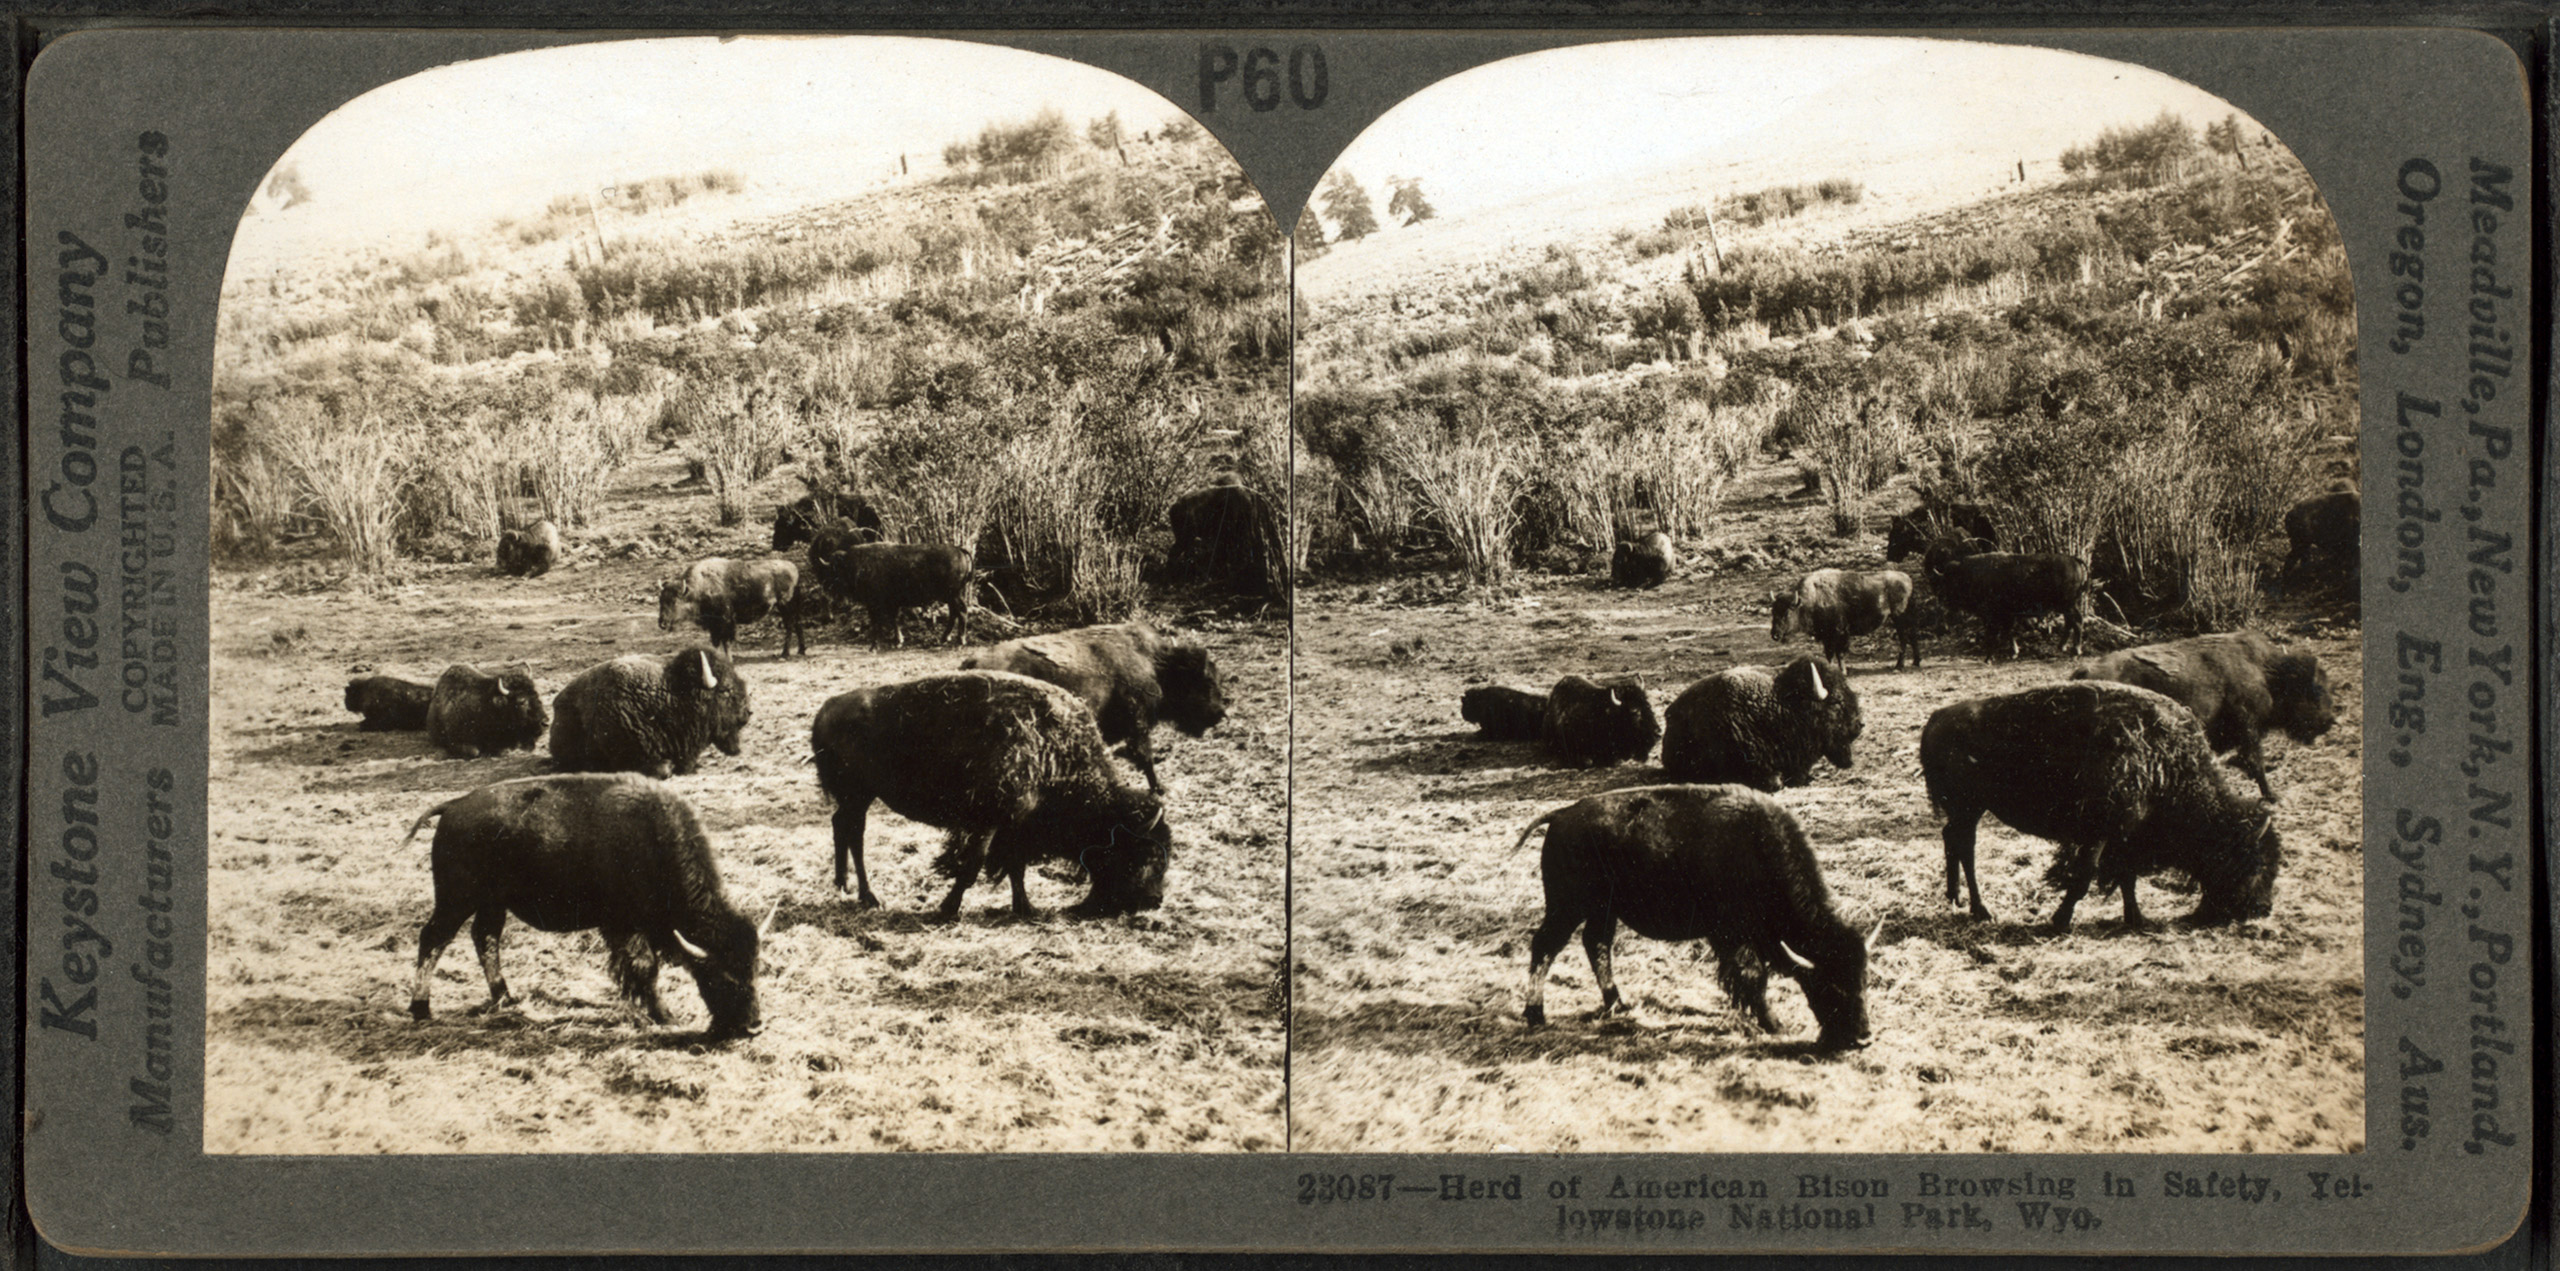 Herd of American Bison, browsing in safety, Yellowstone National Park, Wyoming. Circa 1895-1920.